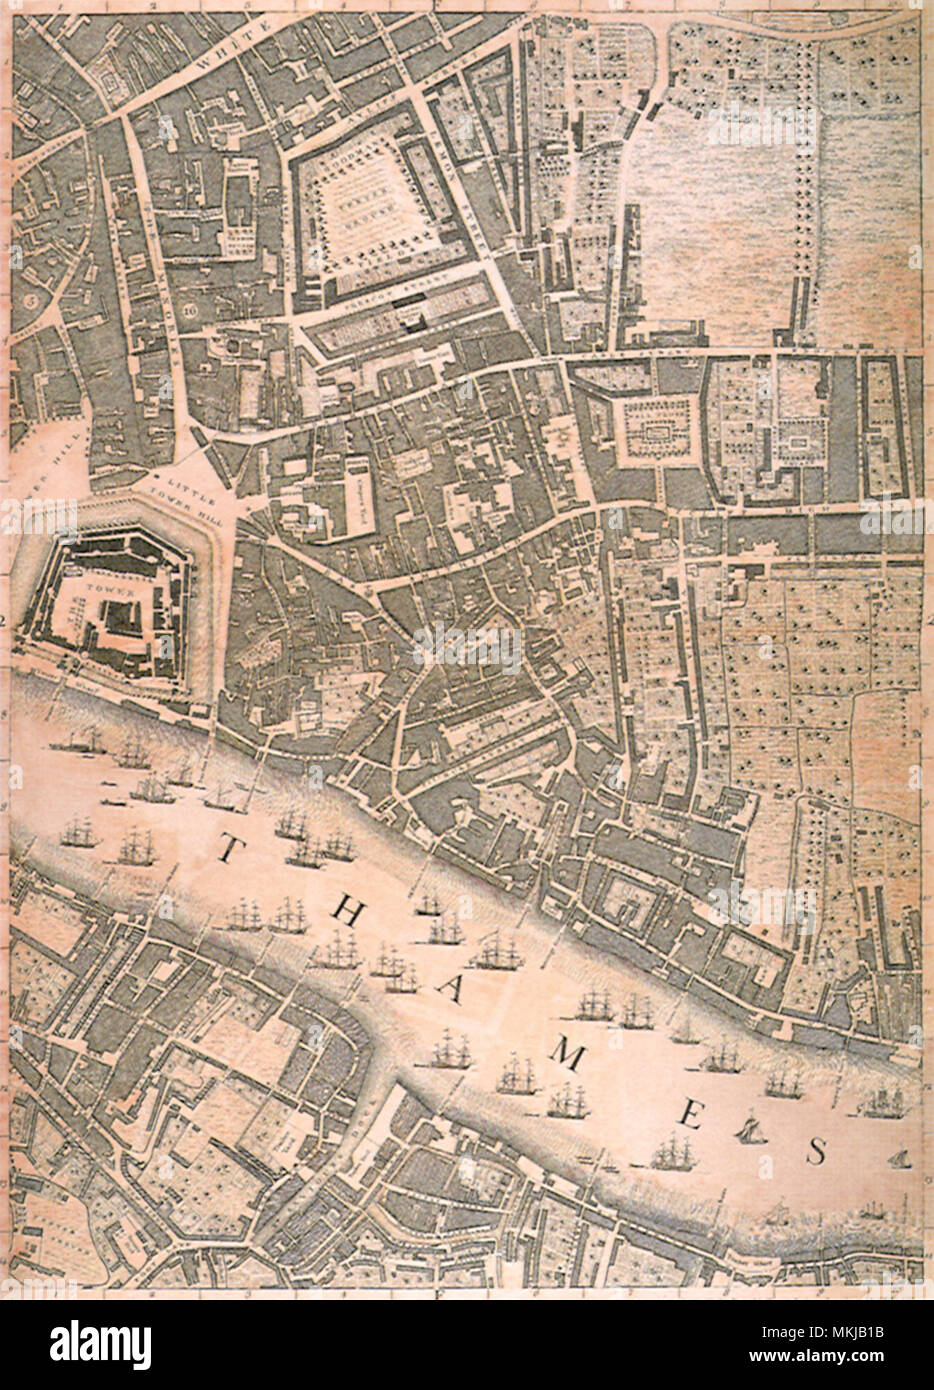 London, Including Tower 1746 - Stock Image